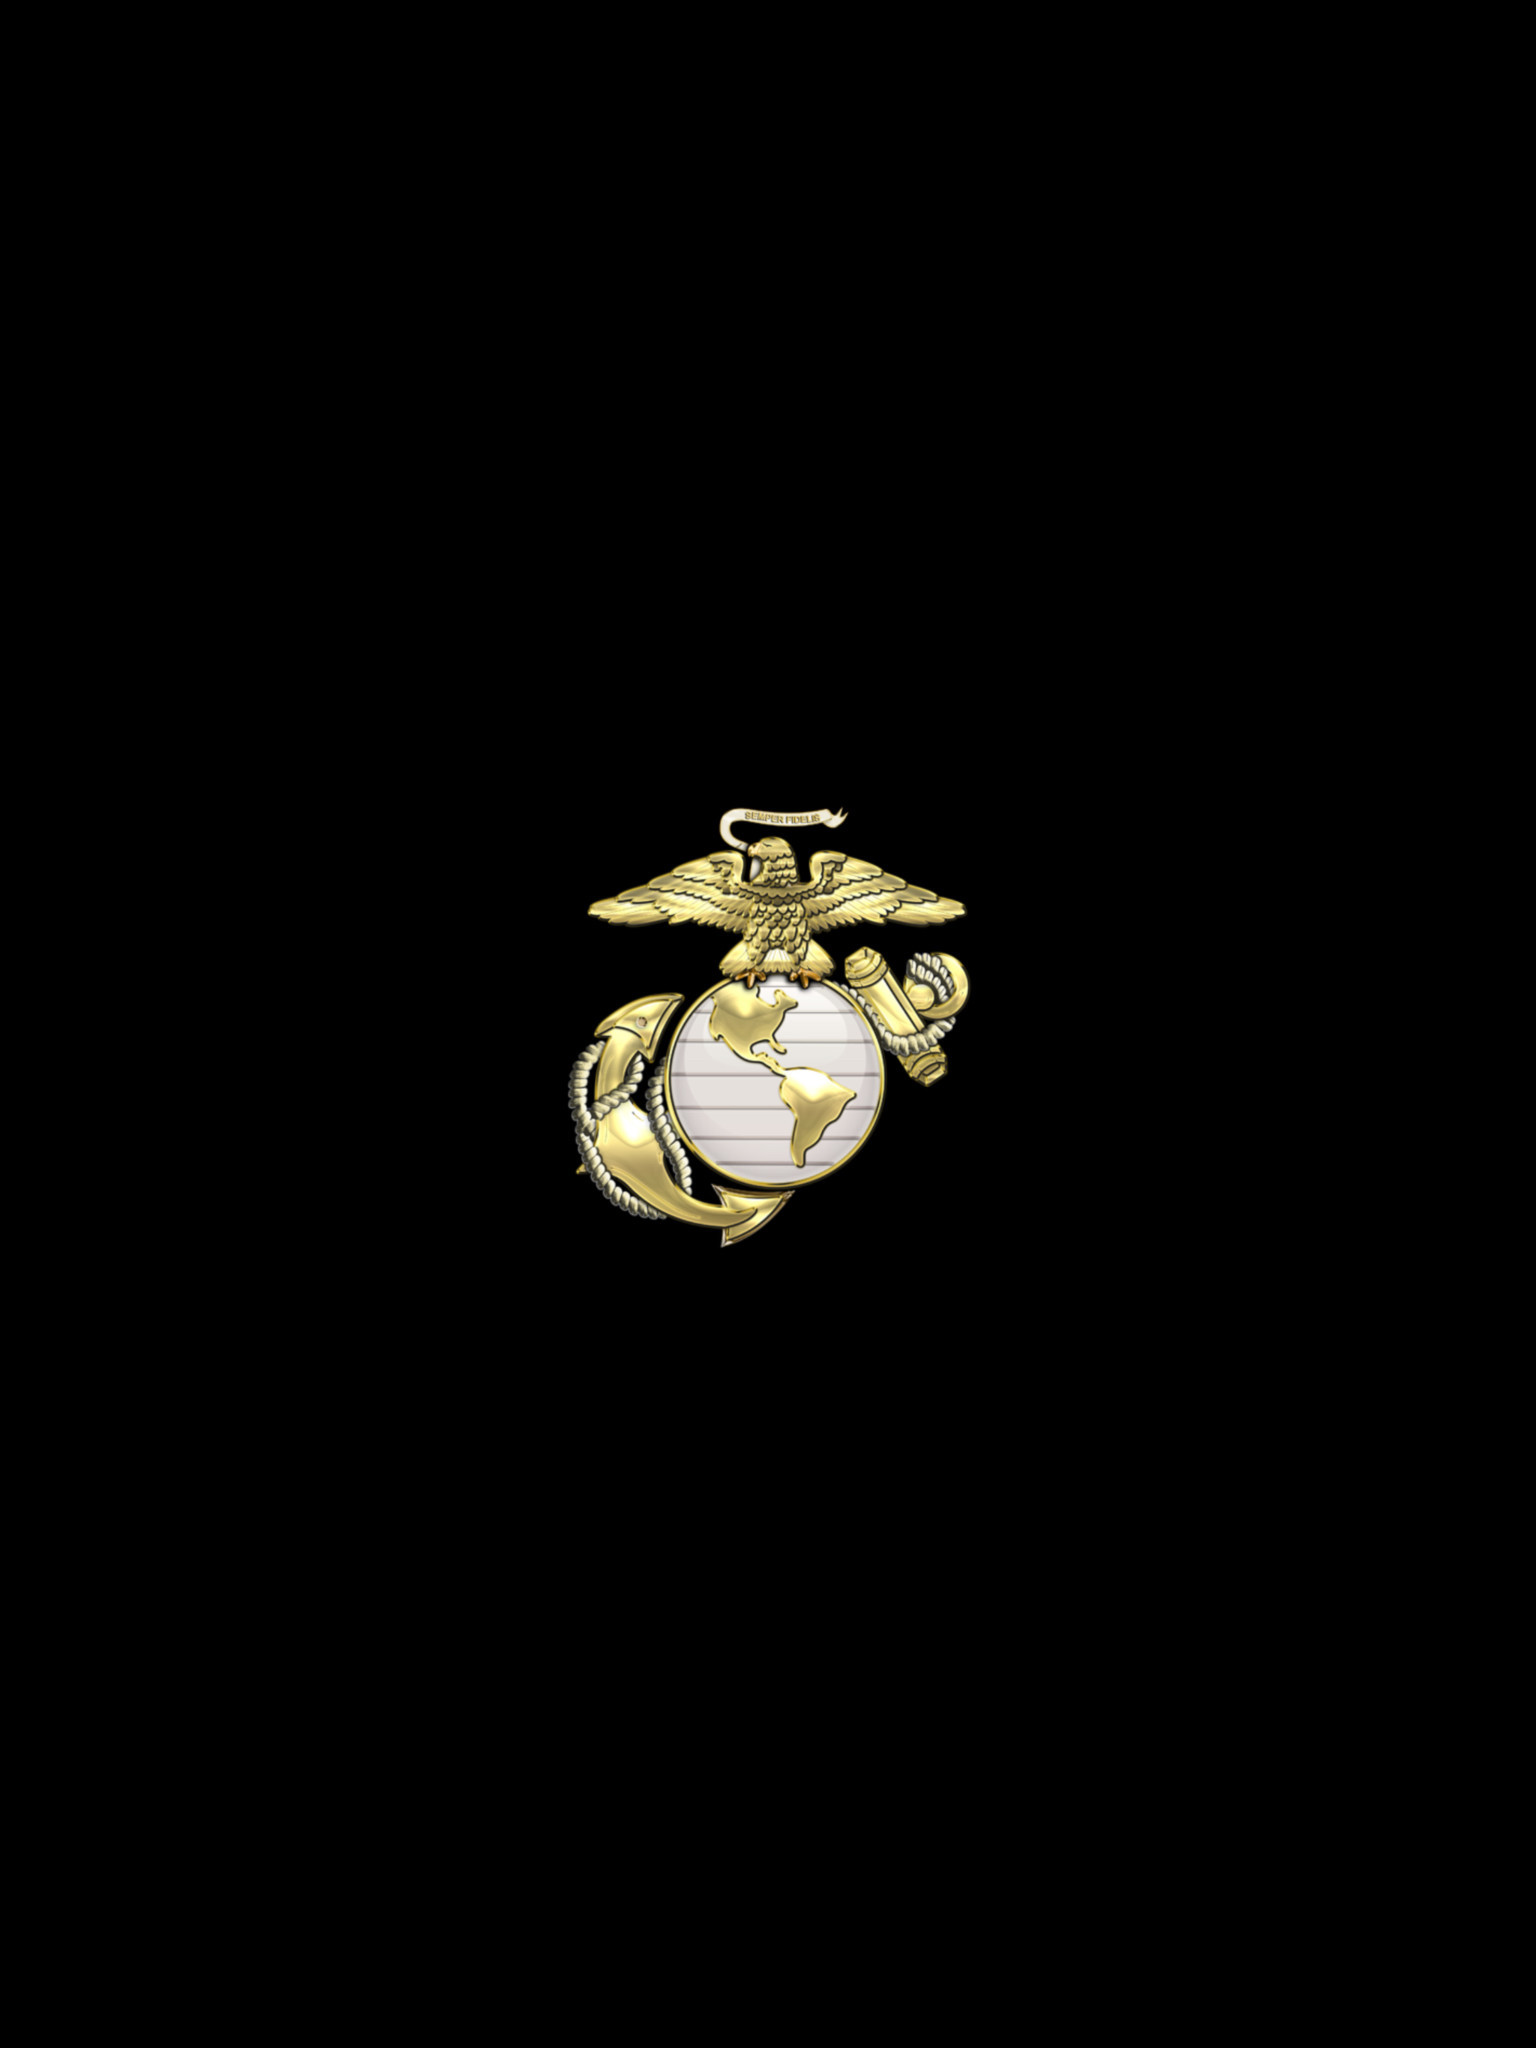 1536x2048 1920x1200 Website Cool USMC Wallpaper